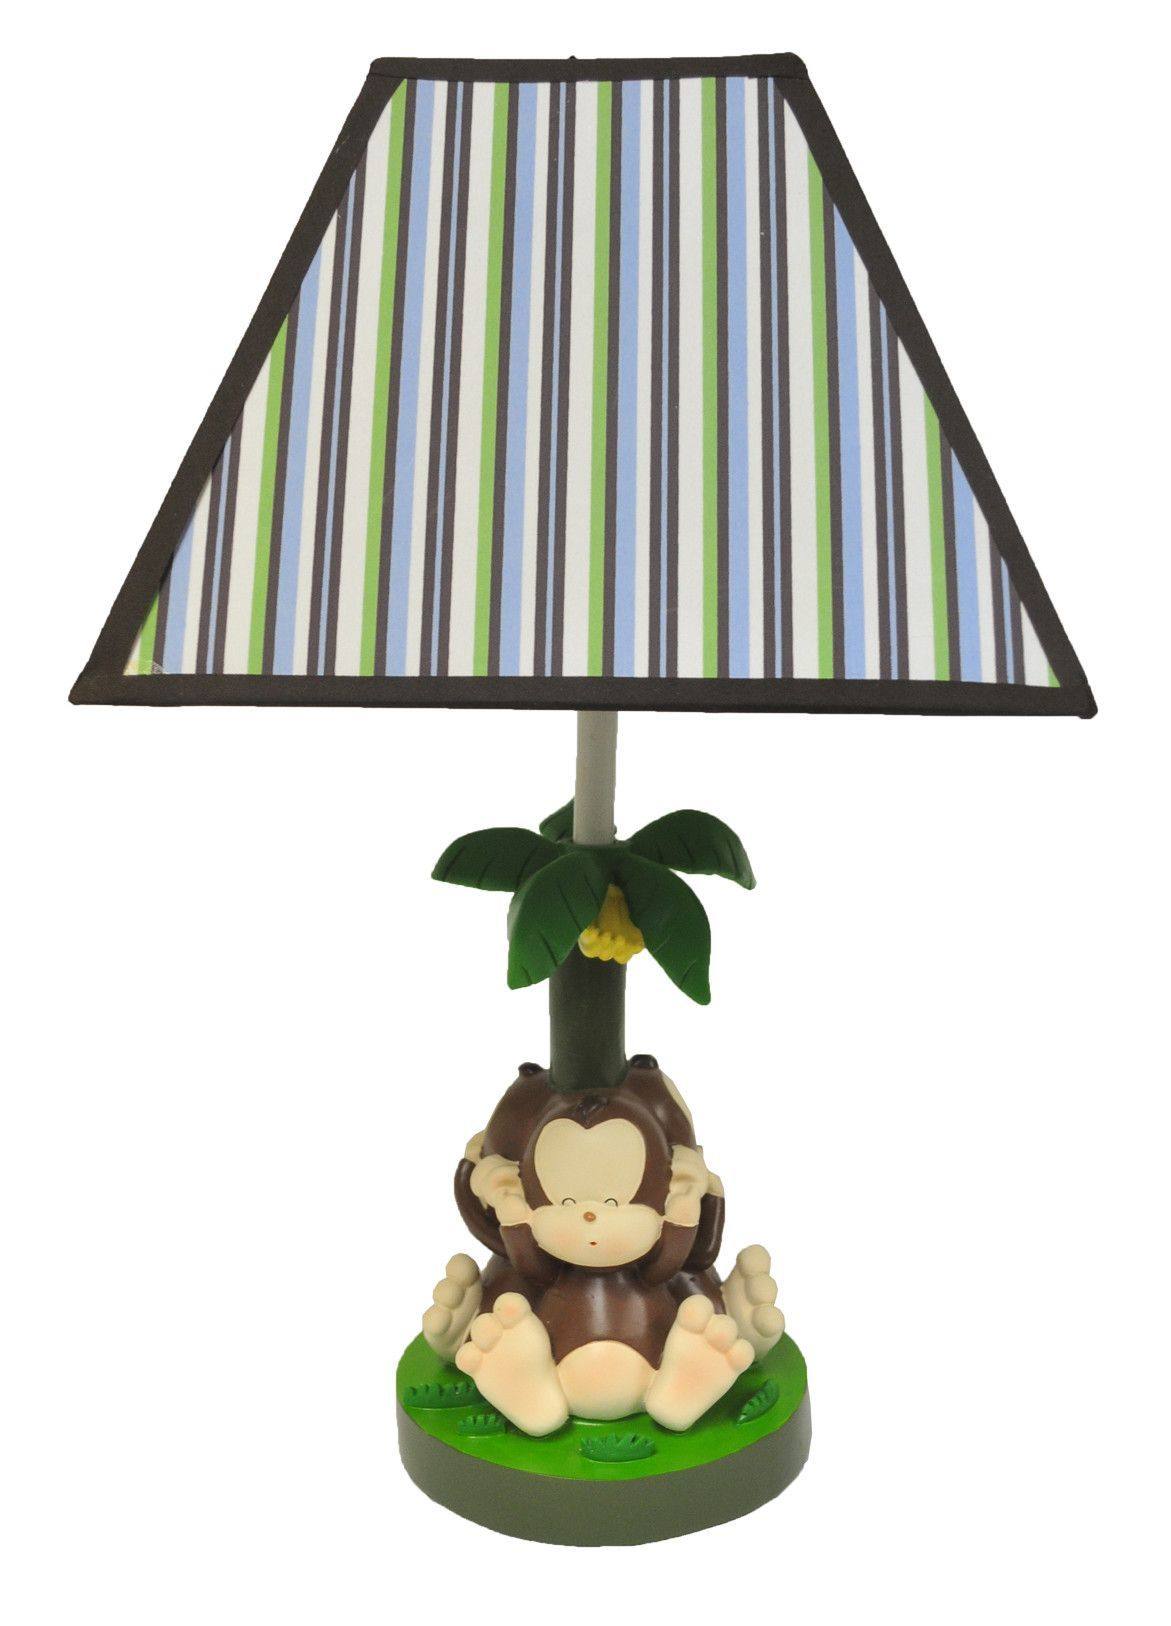 Banana Tree 3 Evil Monkeys 17 Table Lamp Tree Lamp Table Lamp Kids Decor